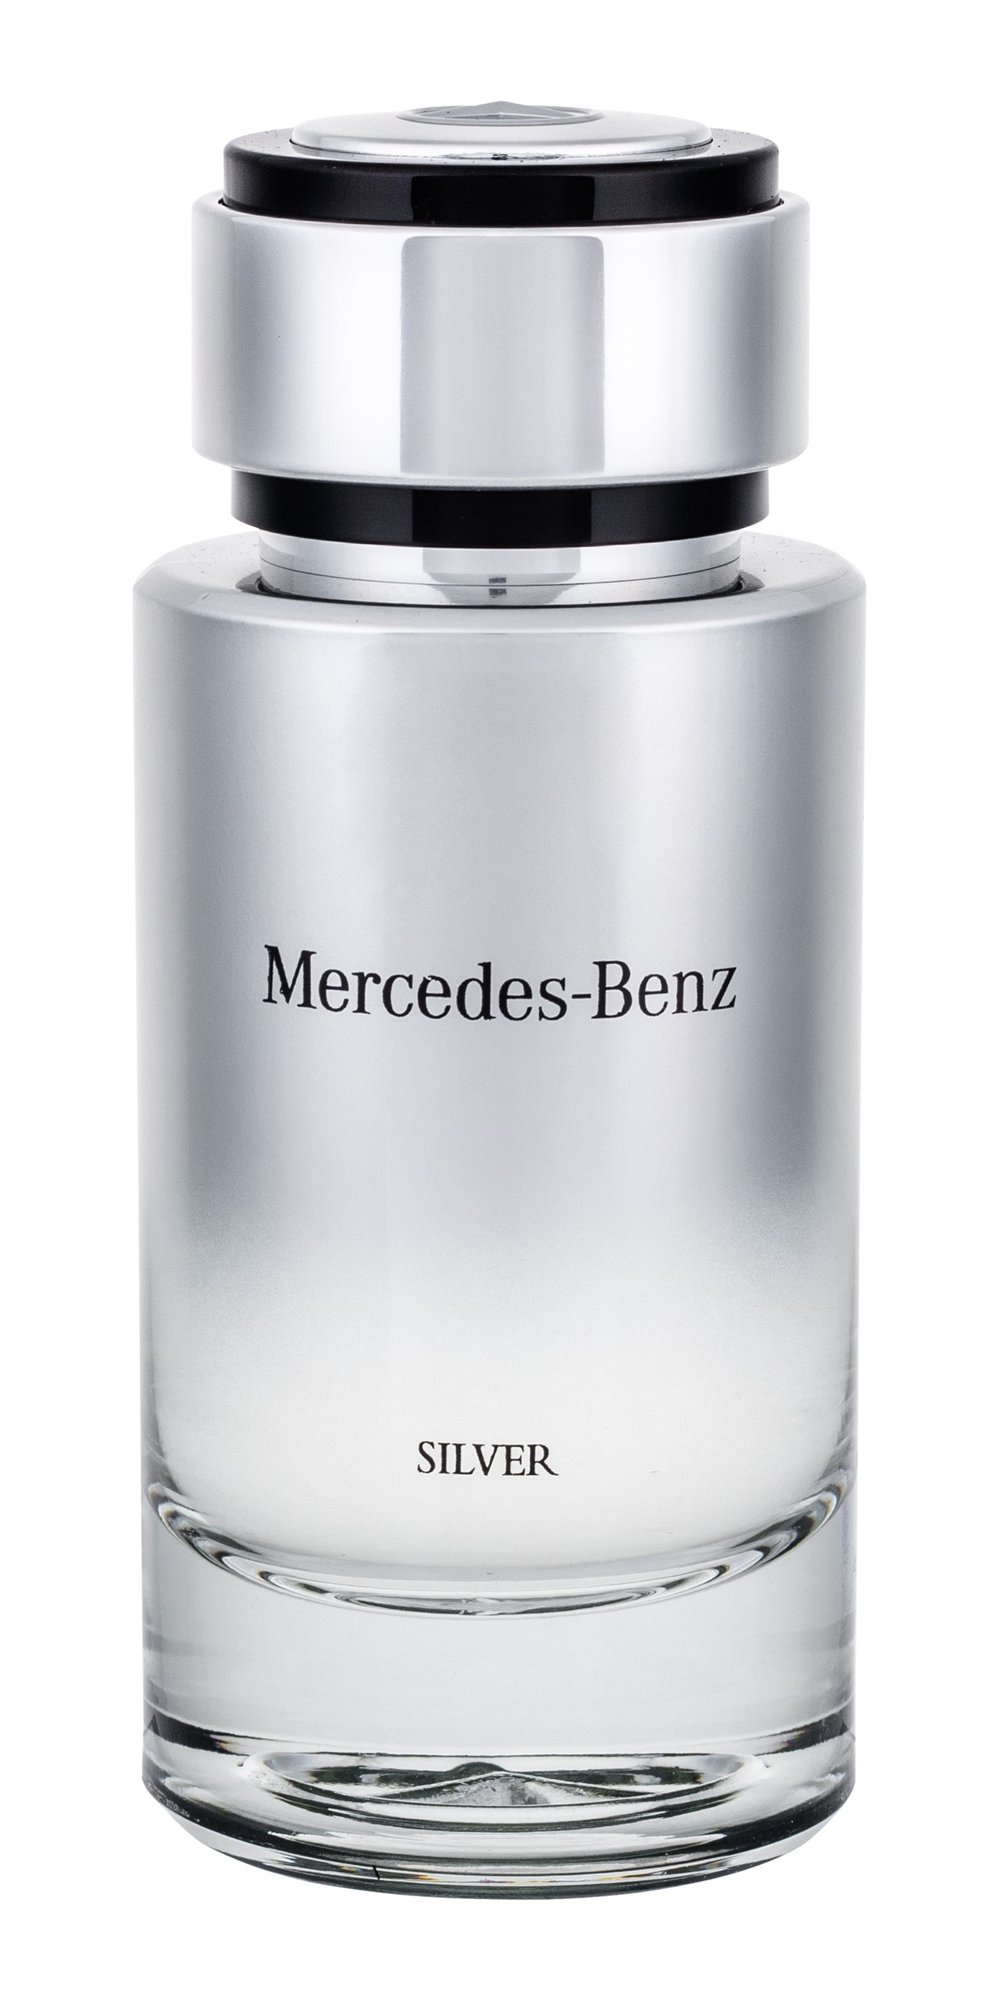 Mercedes-Benz Mercedes-Benz Silver EDT 120ml